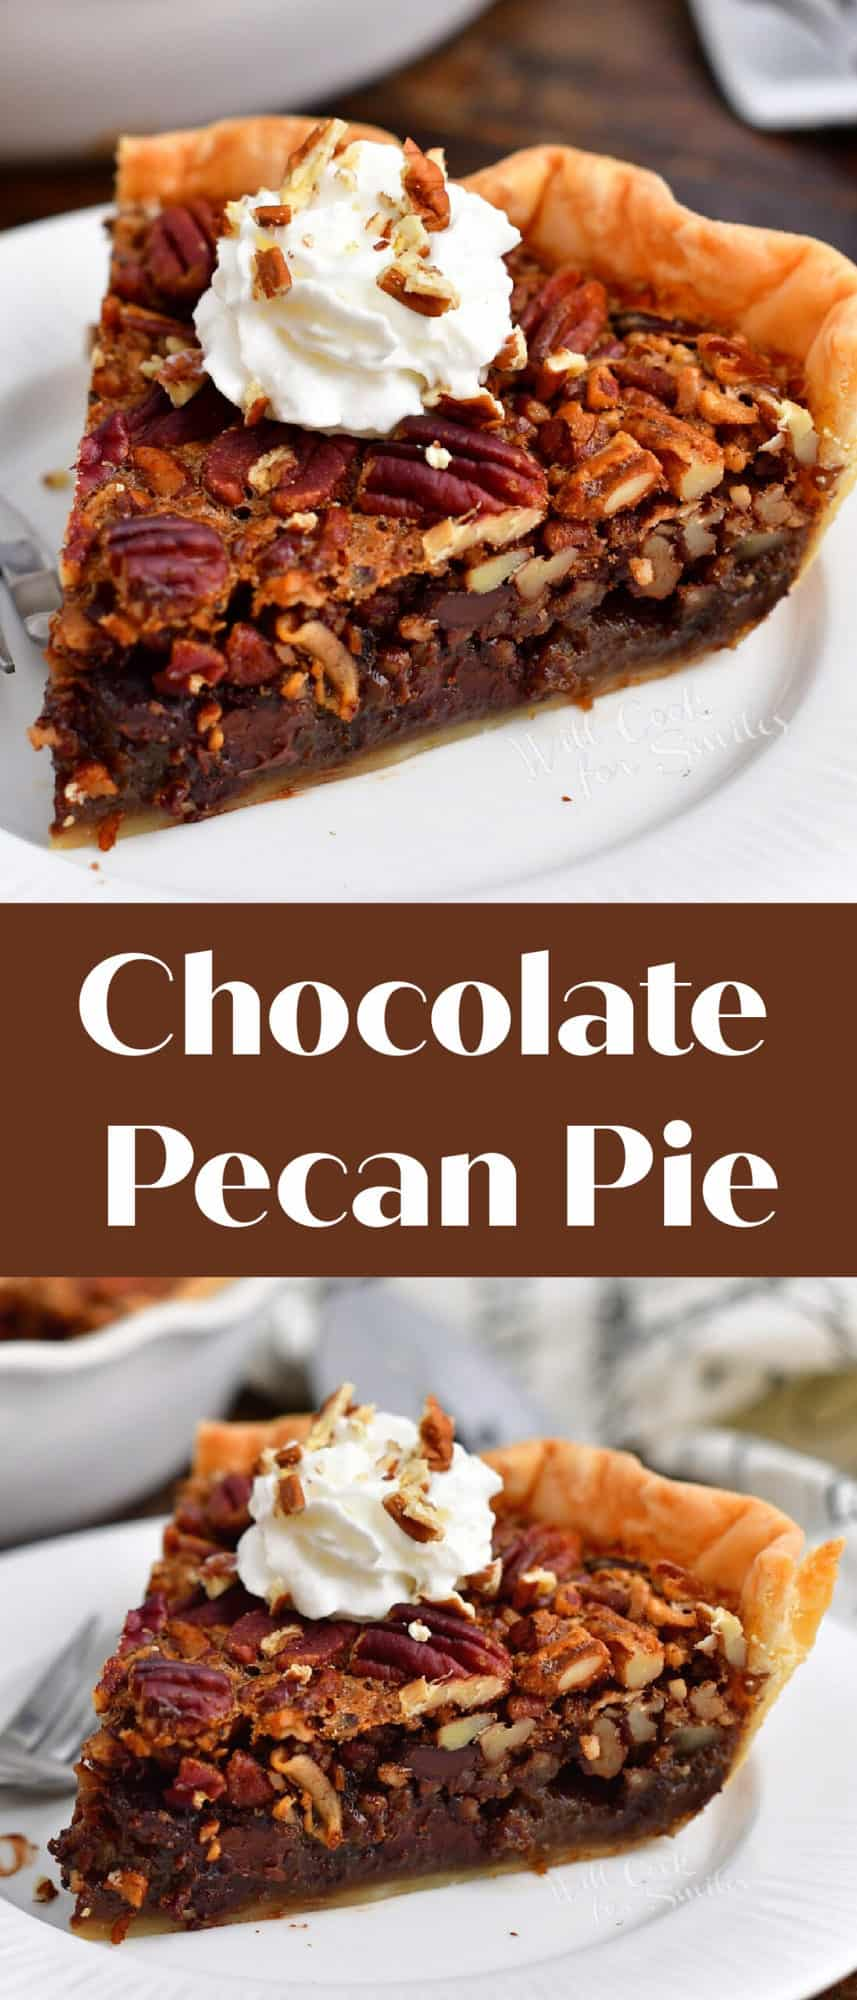 titled image for Pinterest (and shown): Chocolate Pecan Pie